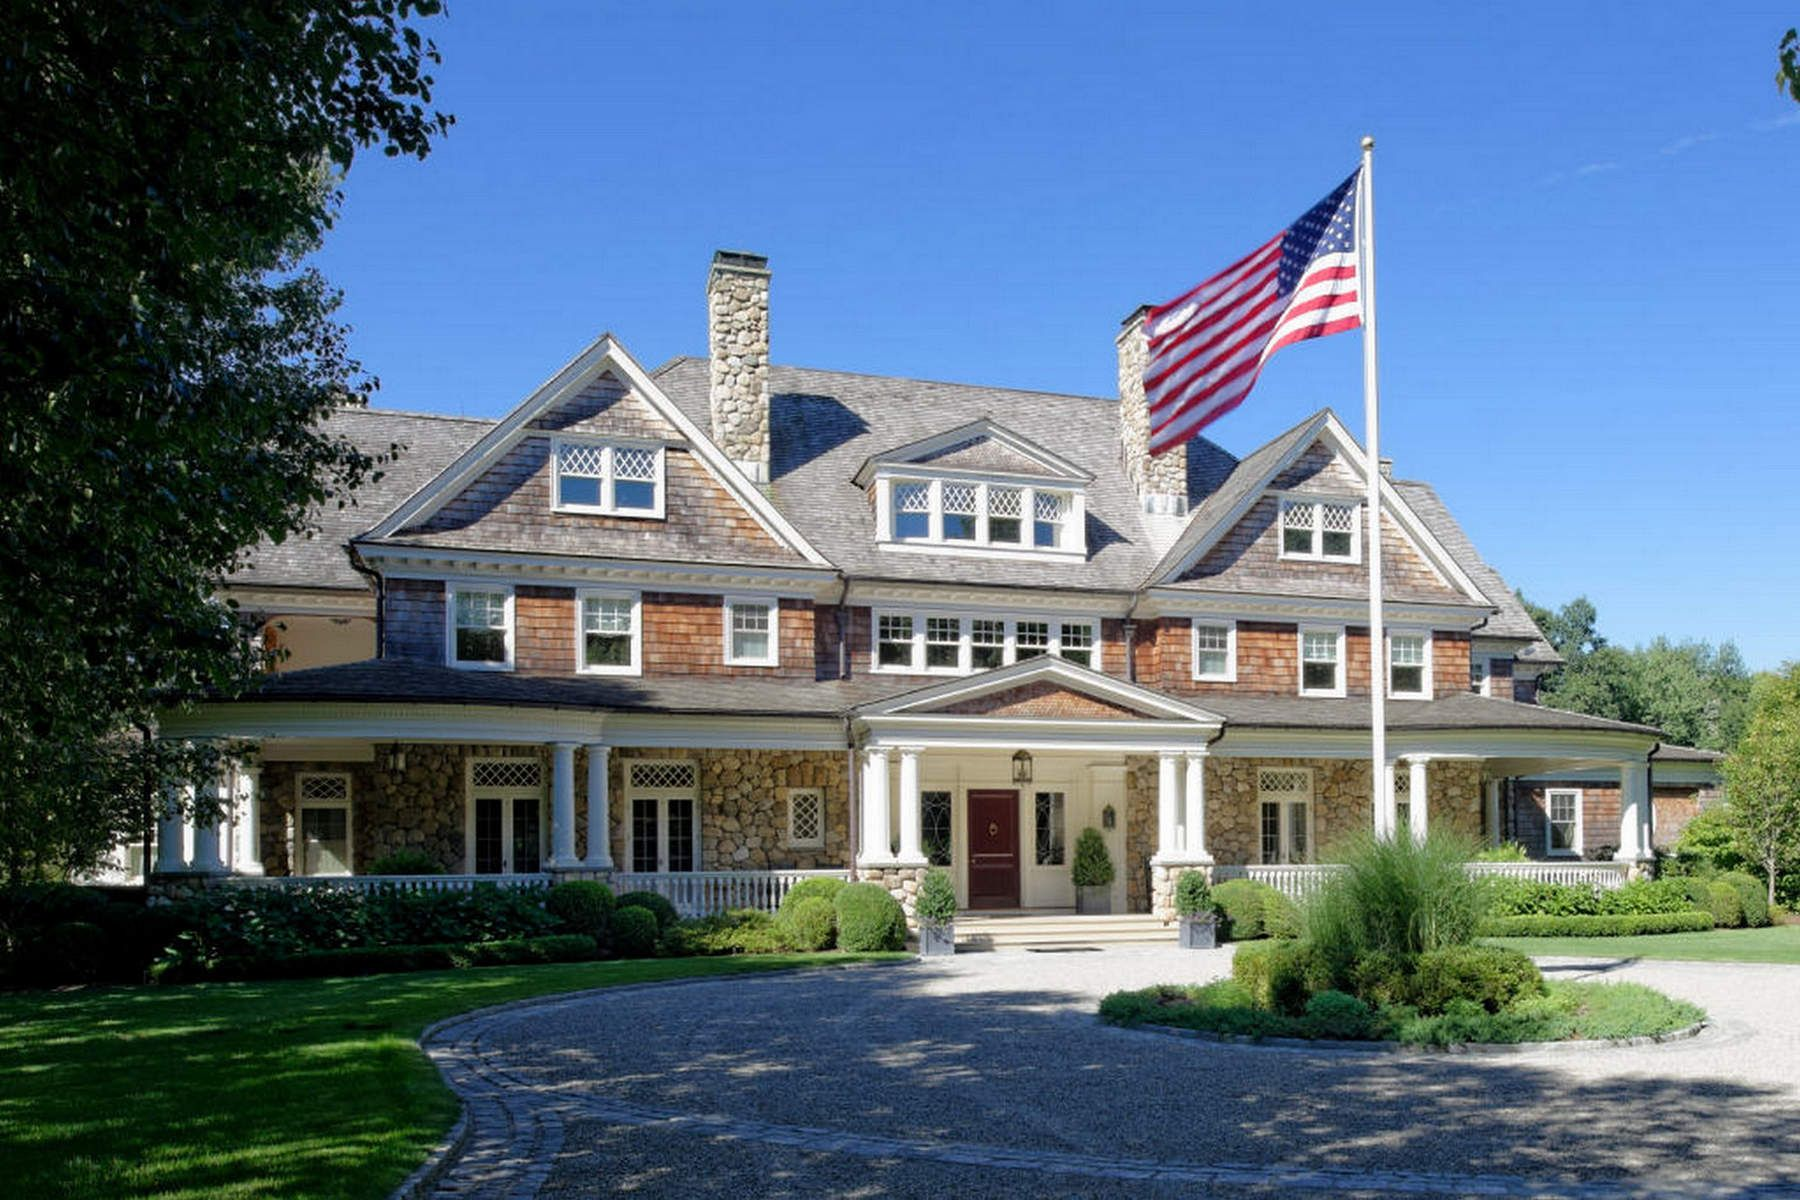 Maison unifamiliale pour l Vente à Ultimate Greenwich Country Estate 586 Round Hill Road Greenwich, Connecticut 06831 États-Unis